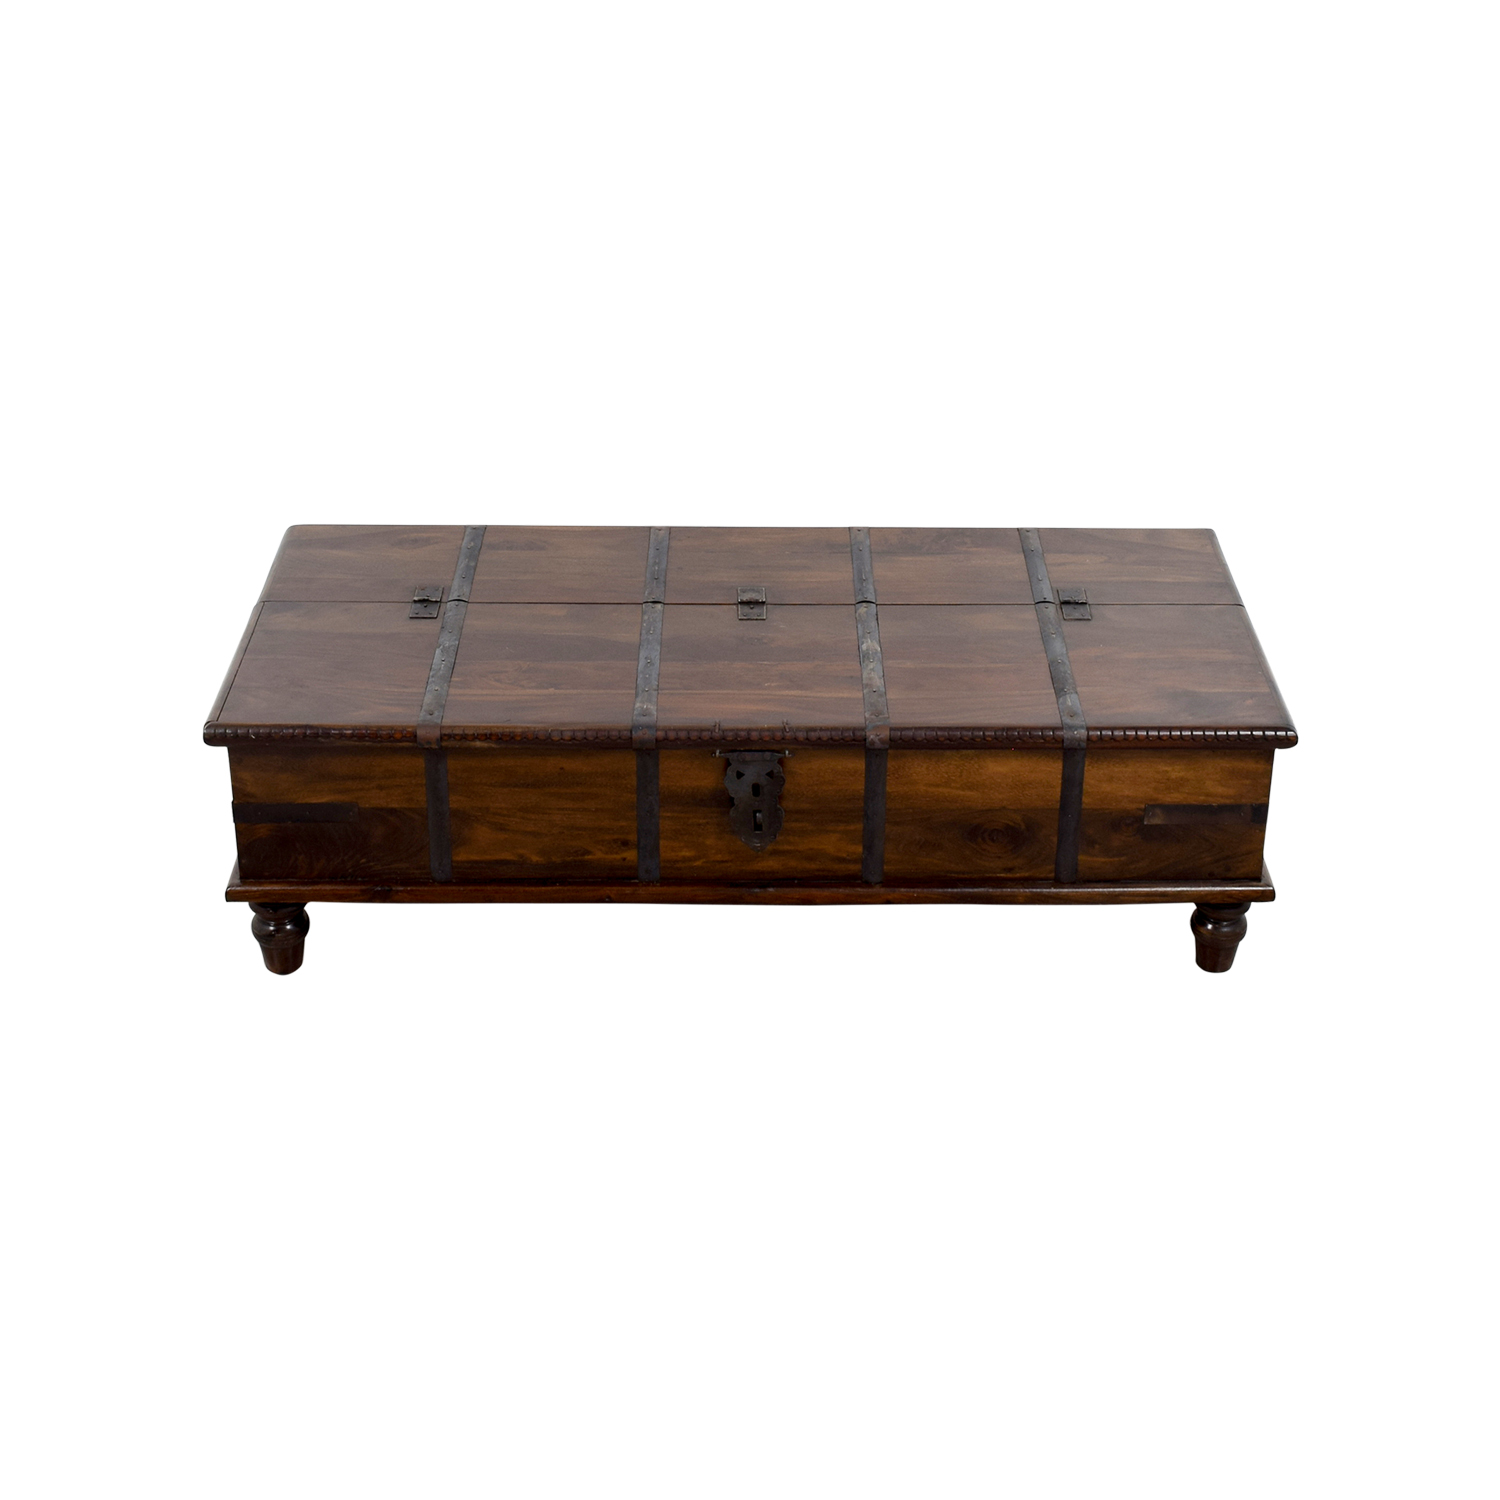 OFF Z Gallerie Z Gallerie Moroccan Coffee Table Tables